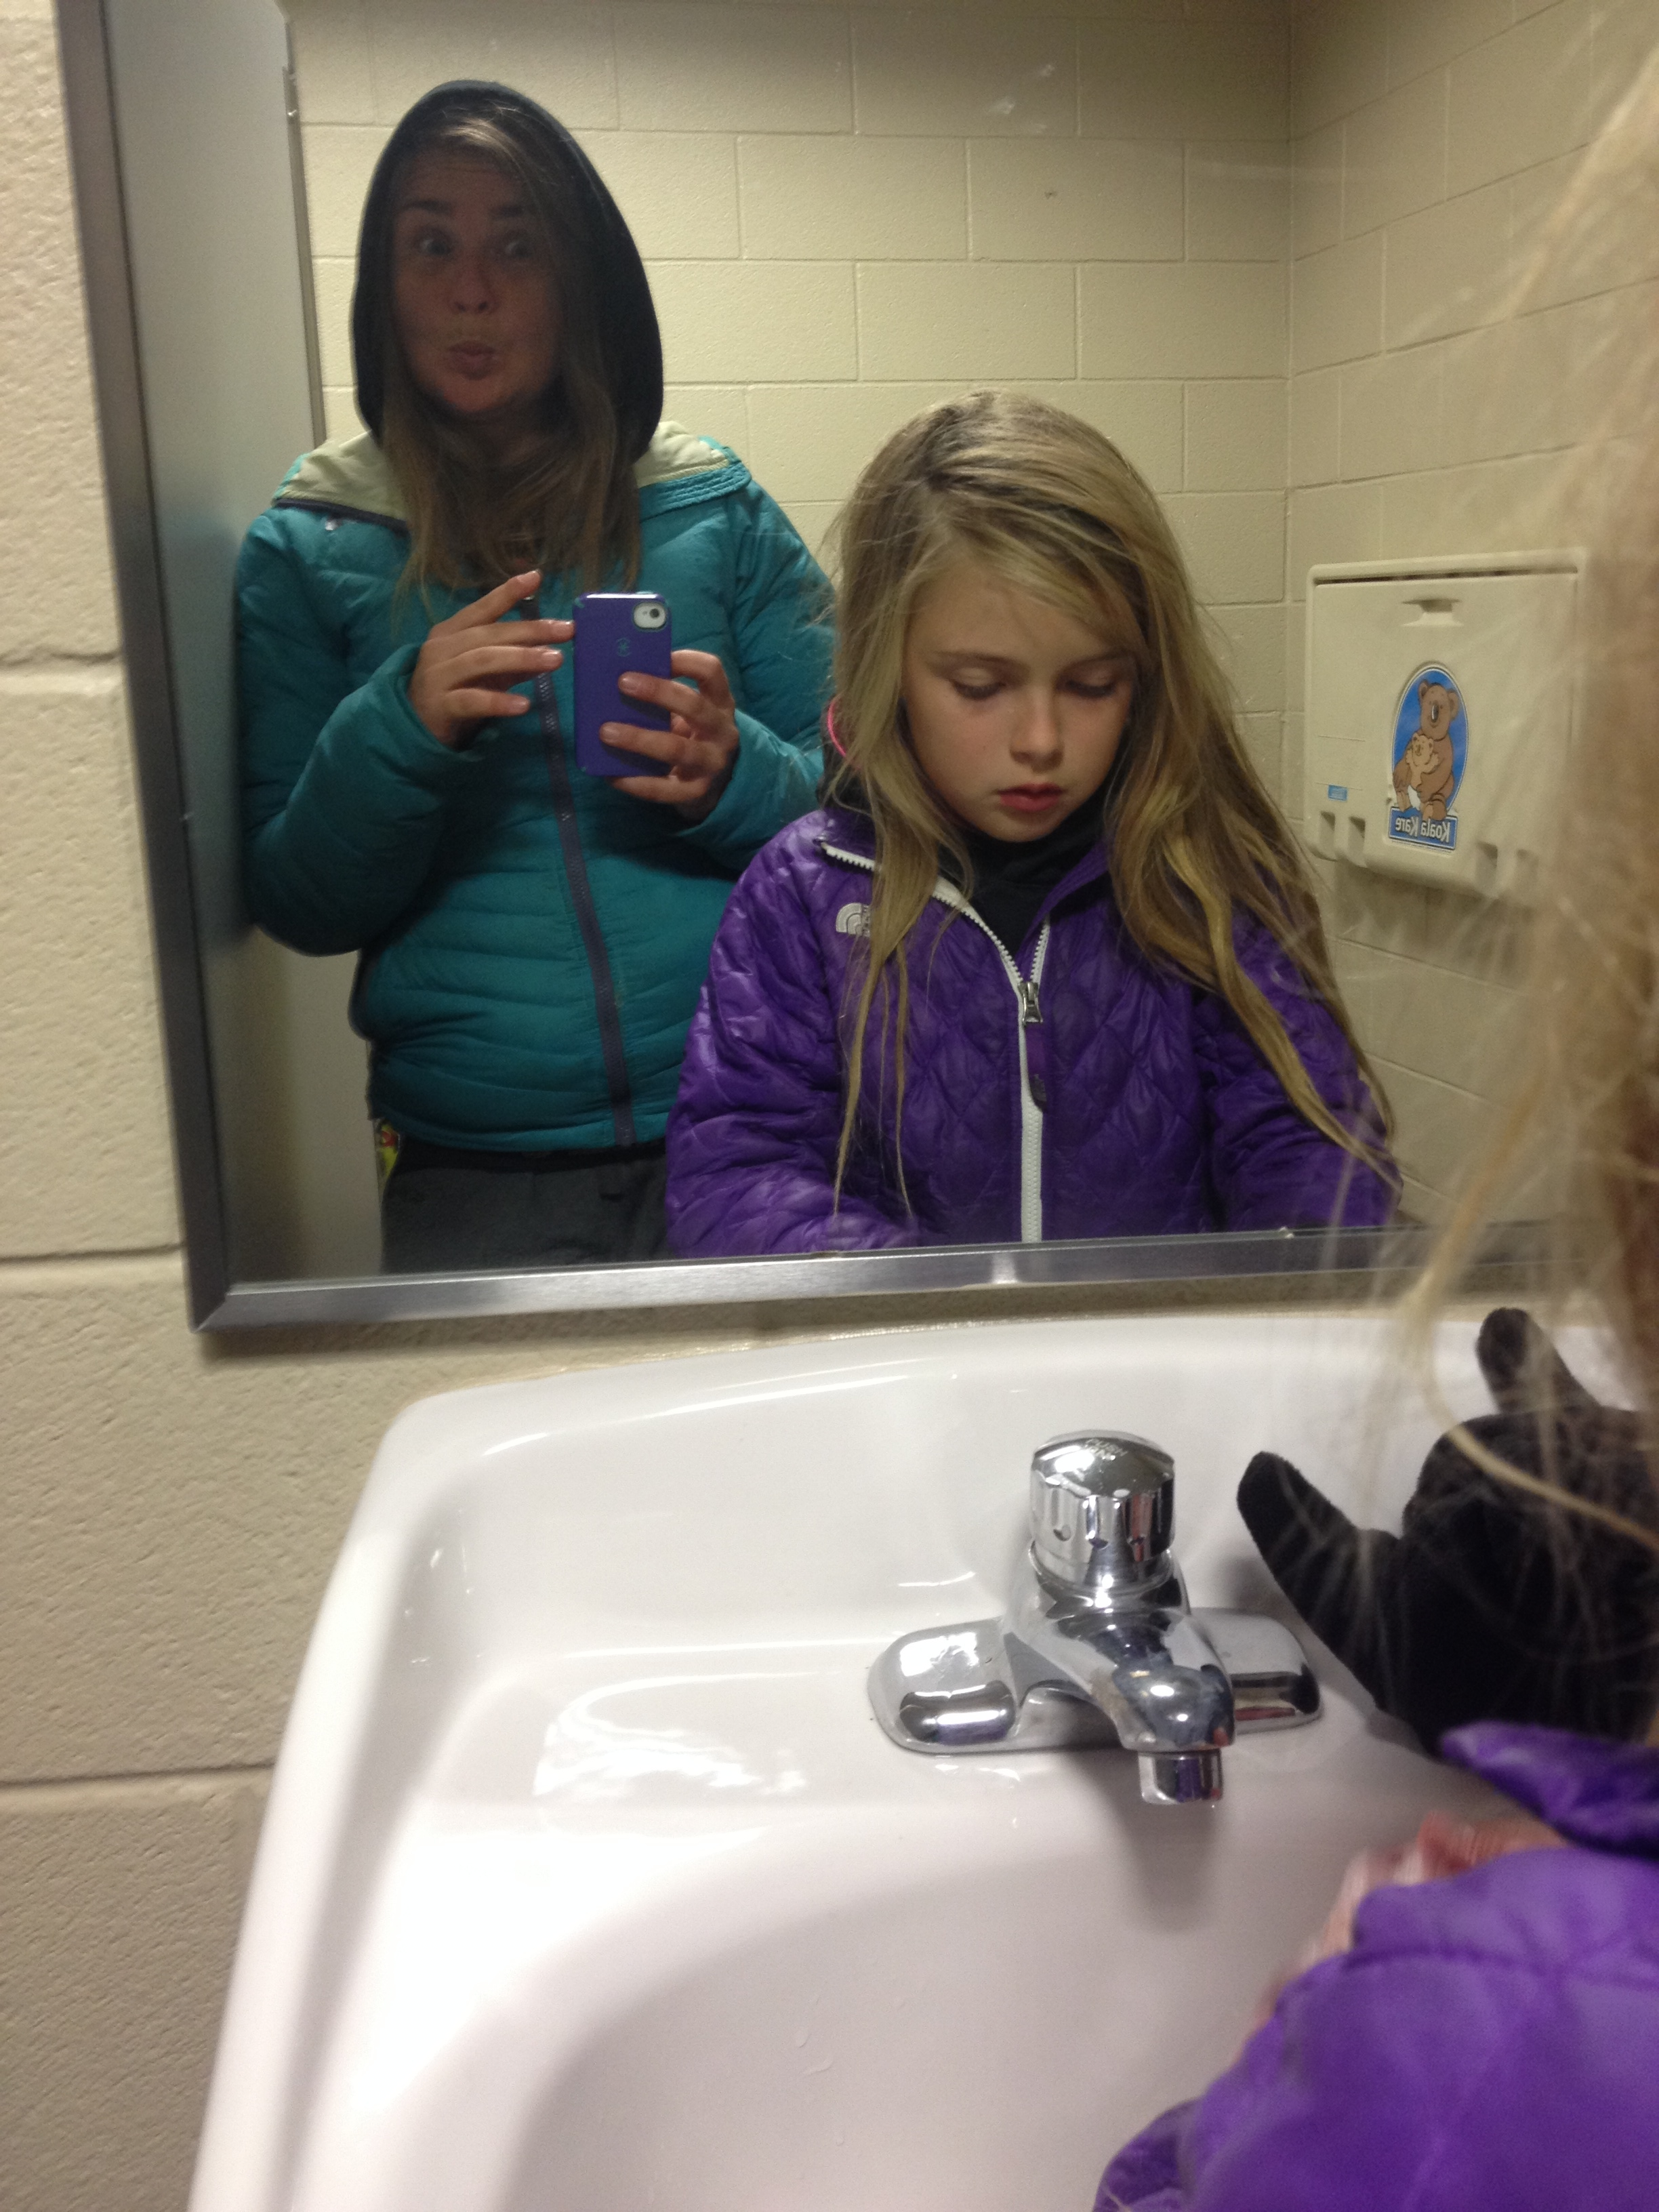 Message, matchless))), young teen girl bathroom selfies can